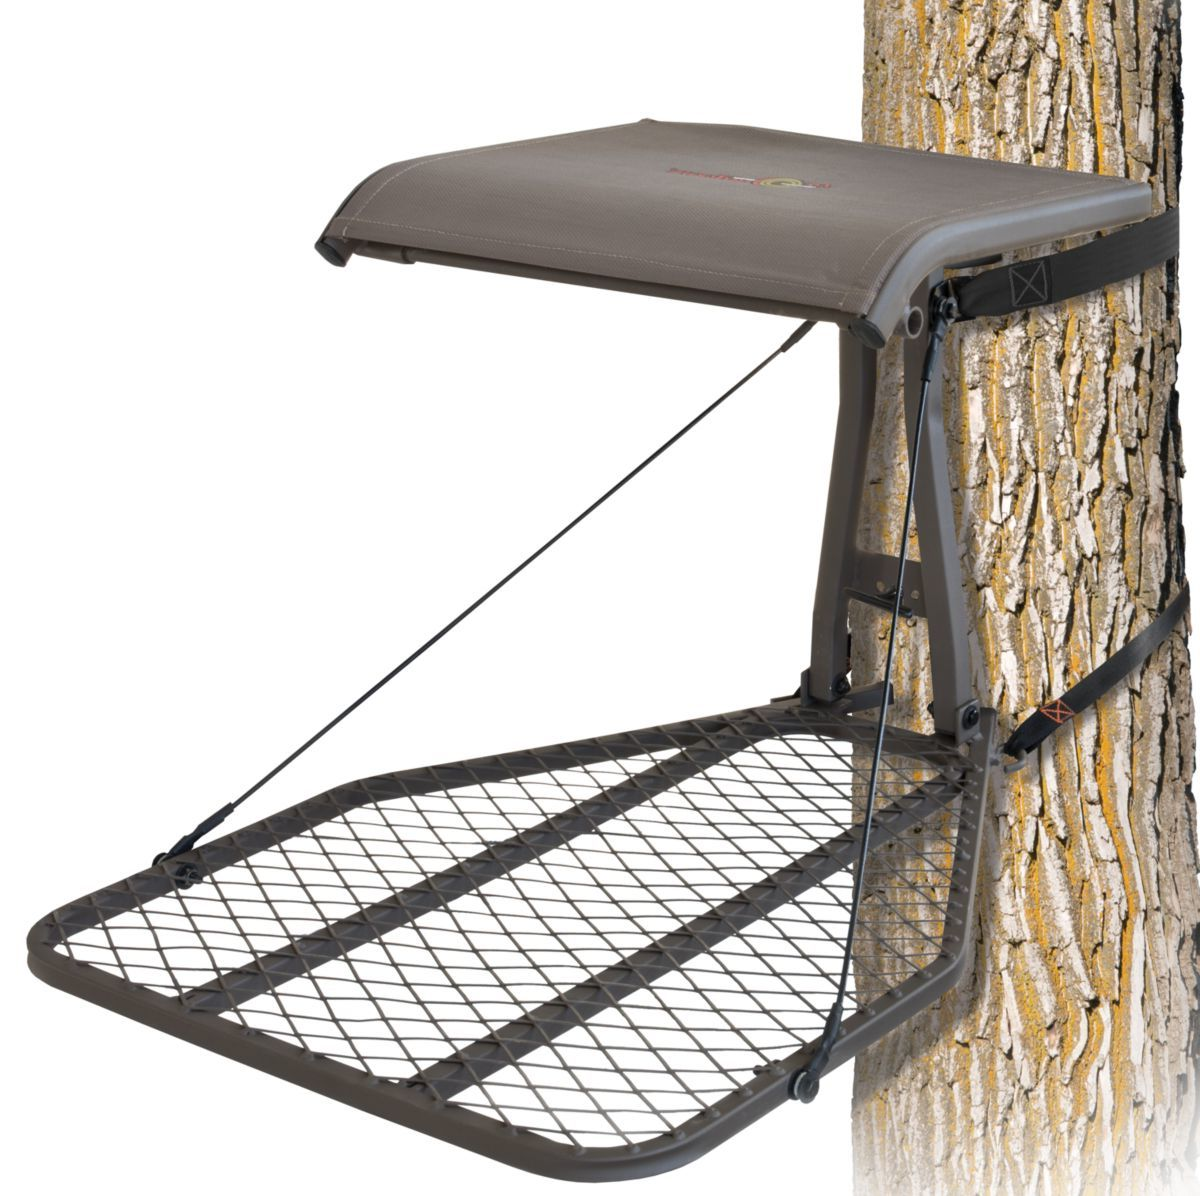 API Outdoors® Voyager Hang-On Treestand